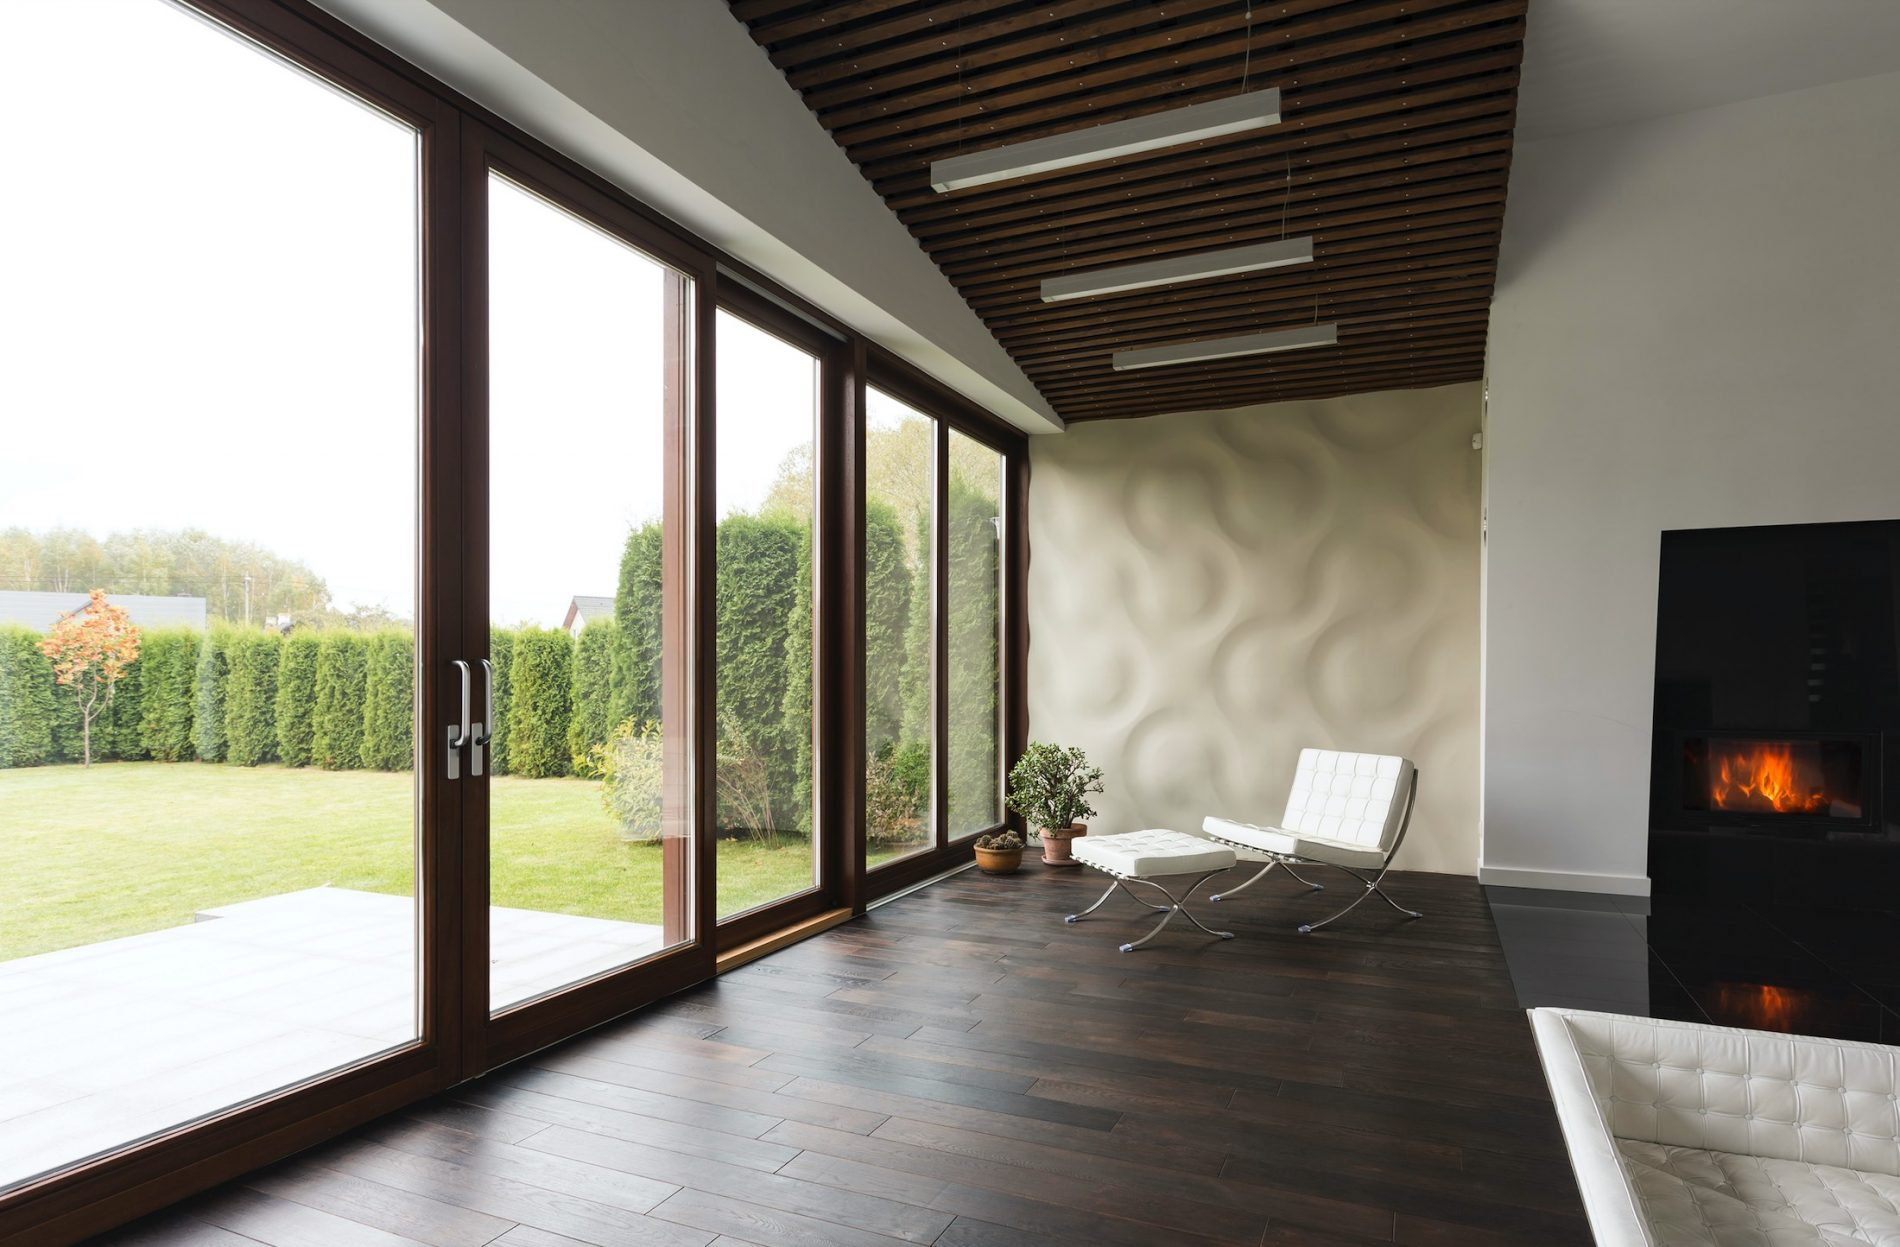 House Window Tint Useful Information And The Pros & Cons of Using It - Home Window Film in Buffalo, New York